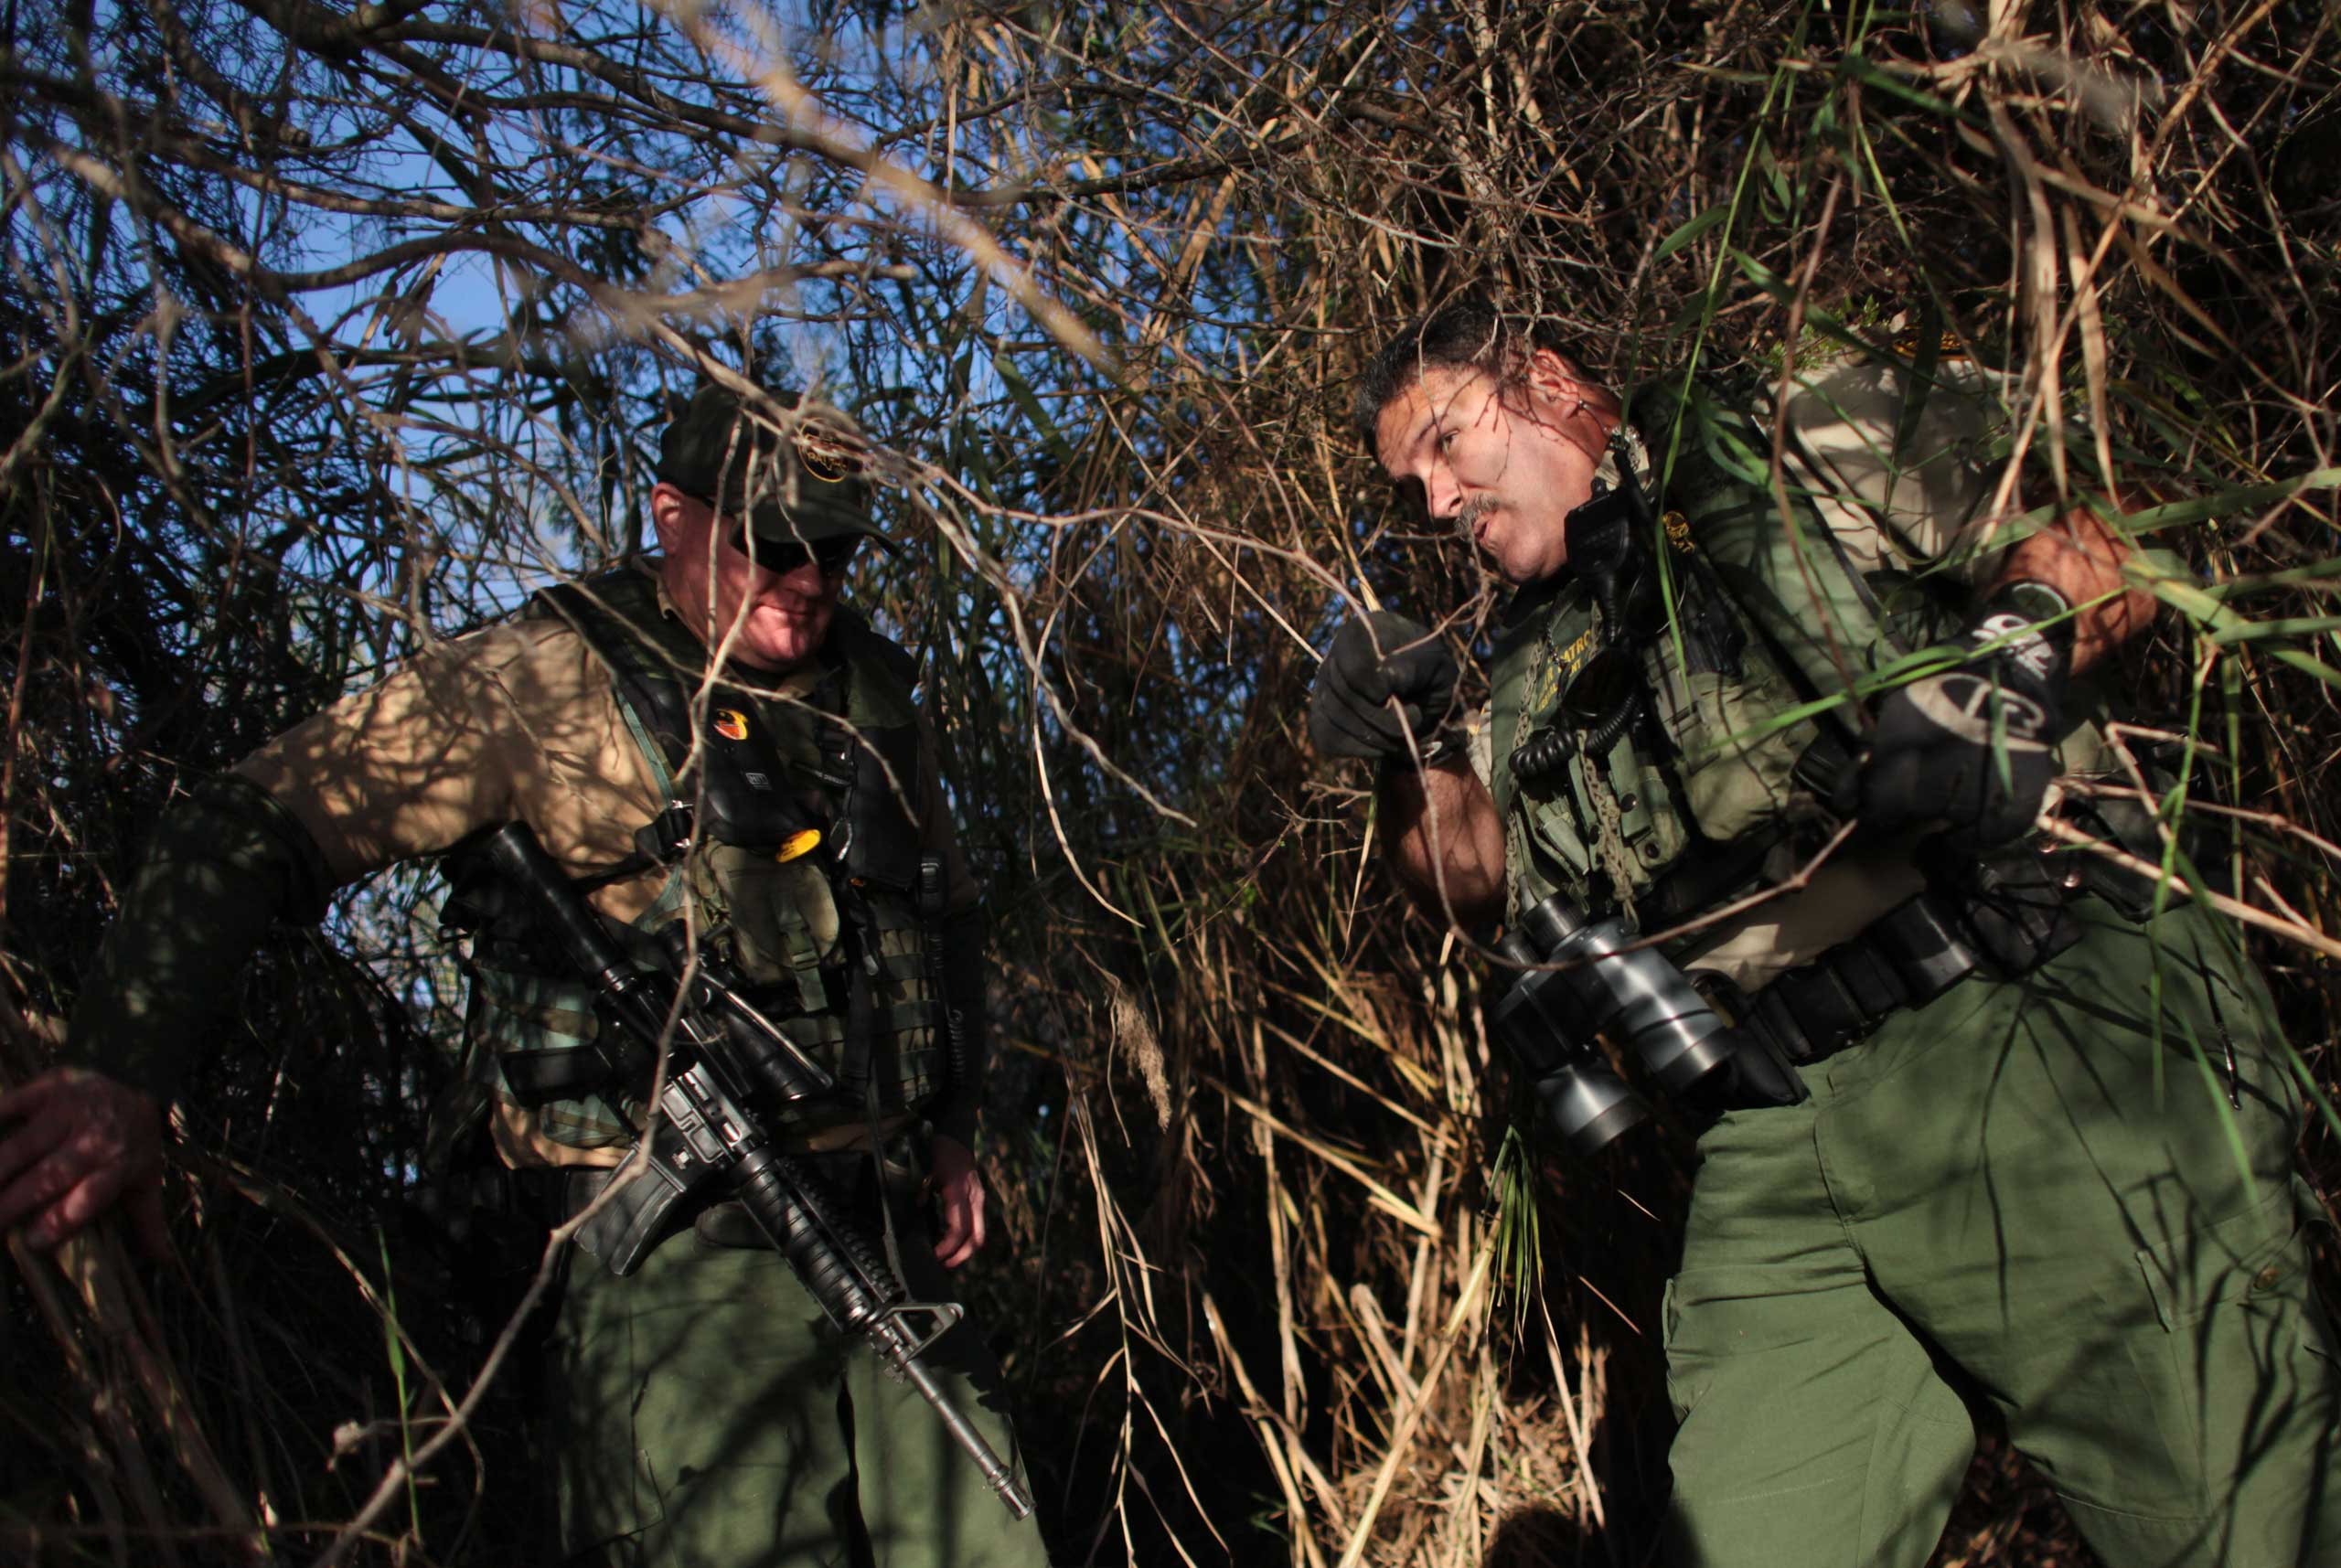 Border Patrol agents patrol the thick brush along the banks of the Rio Grande south of Mission, Texas on Feb. 13, 2013.